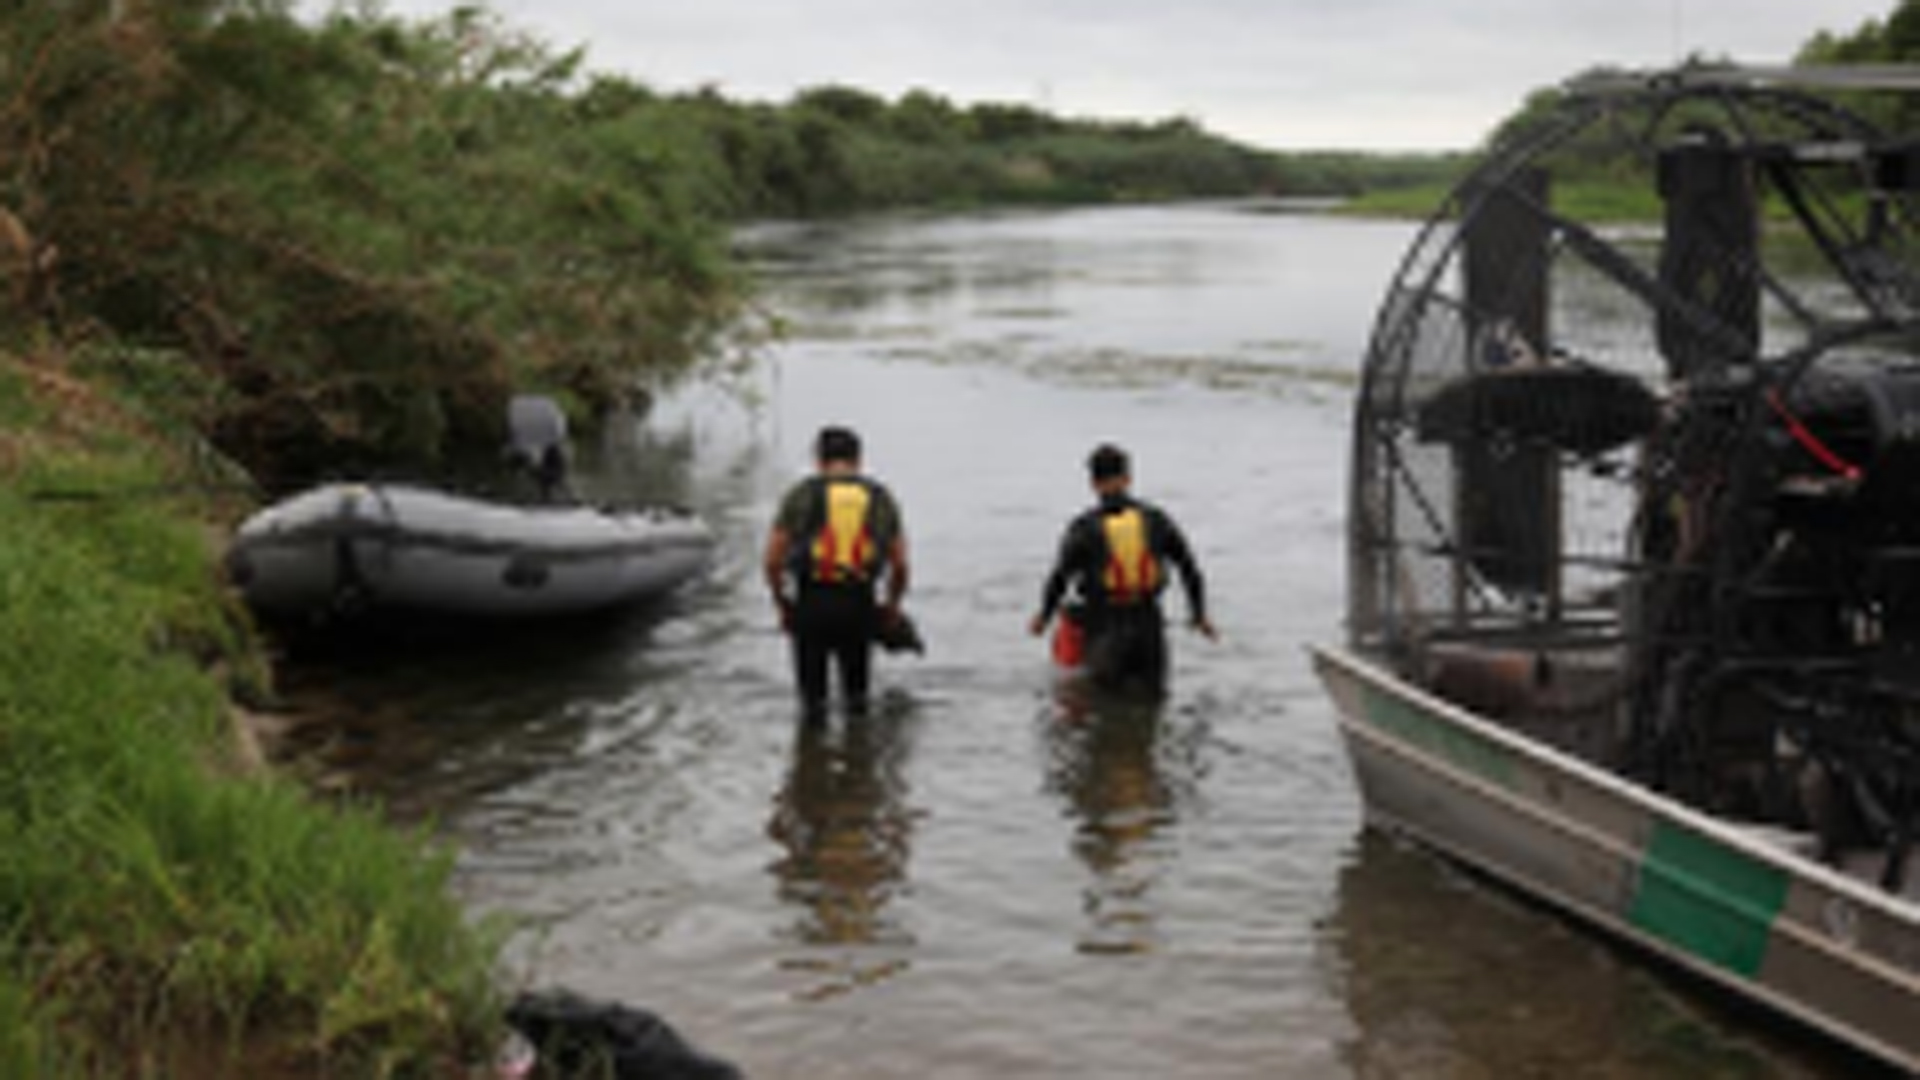 In this photo released by CBP, a Del Rio Sector dive team can be seen searching for a missing 2-year-old girl in the Rio Grande River.